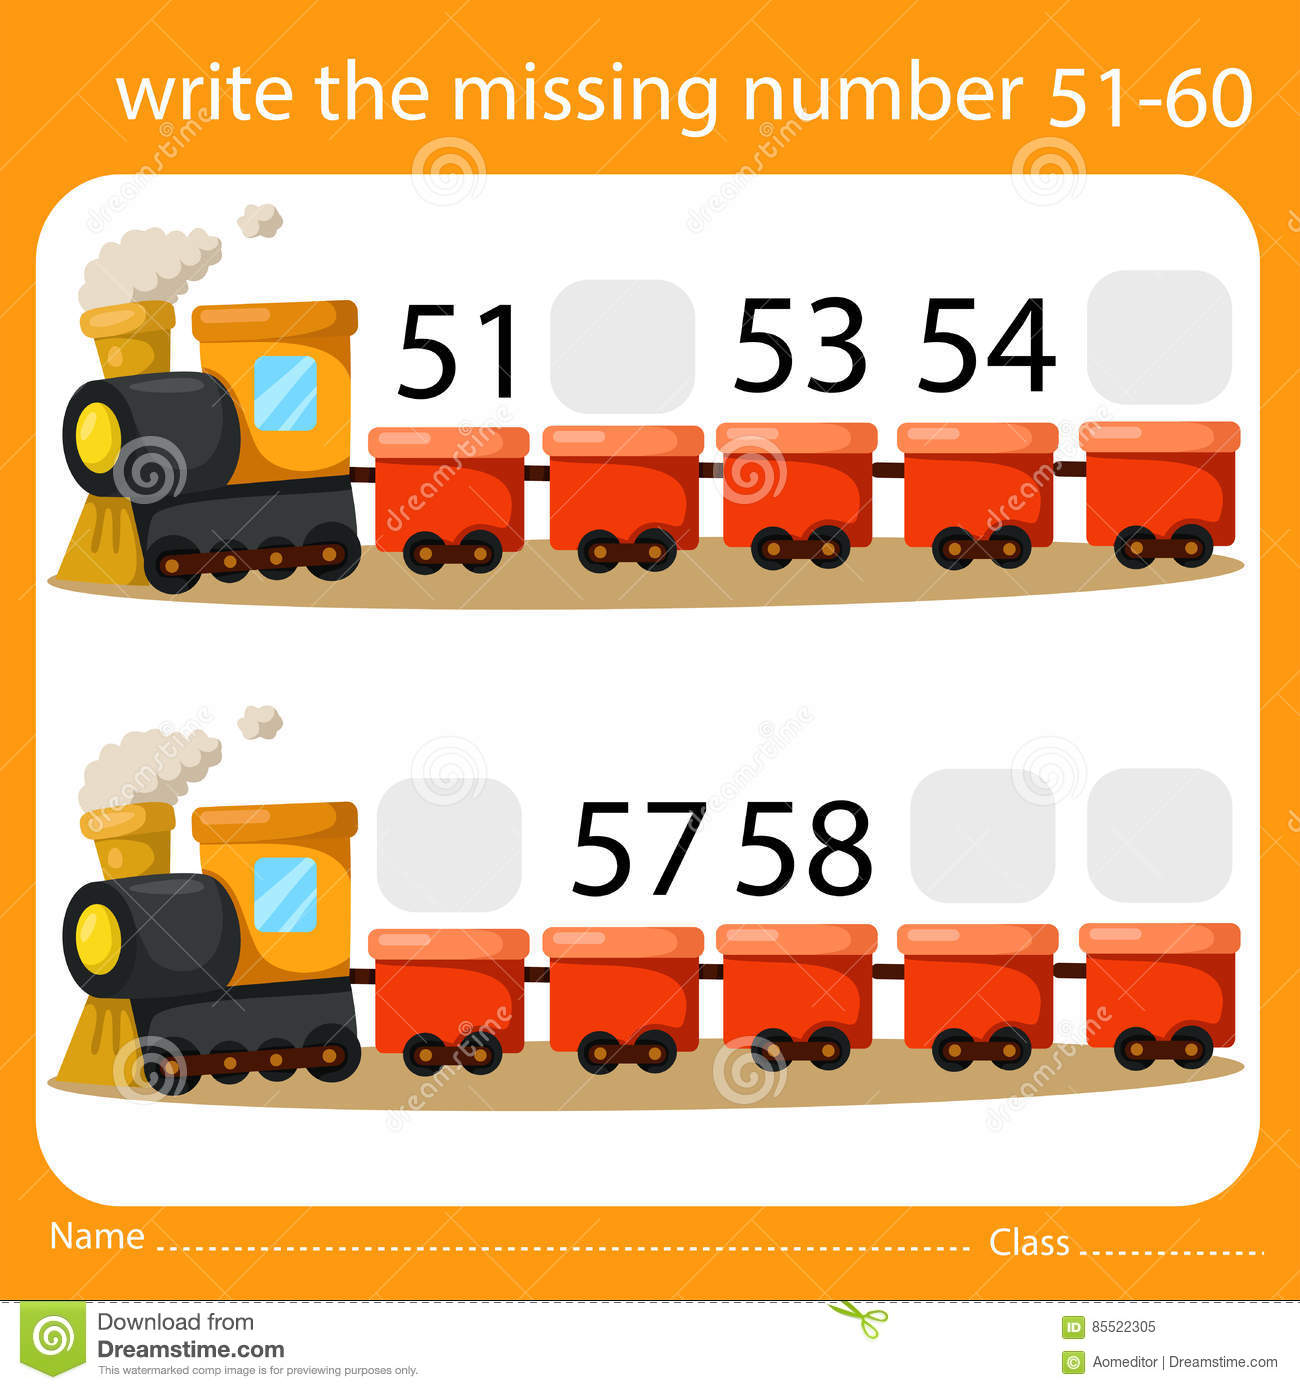 Illustrator Of Write The Missing Number 51 60 Stock Vector